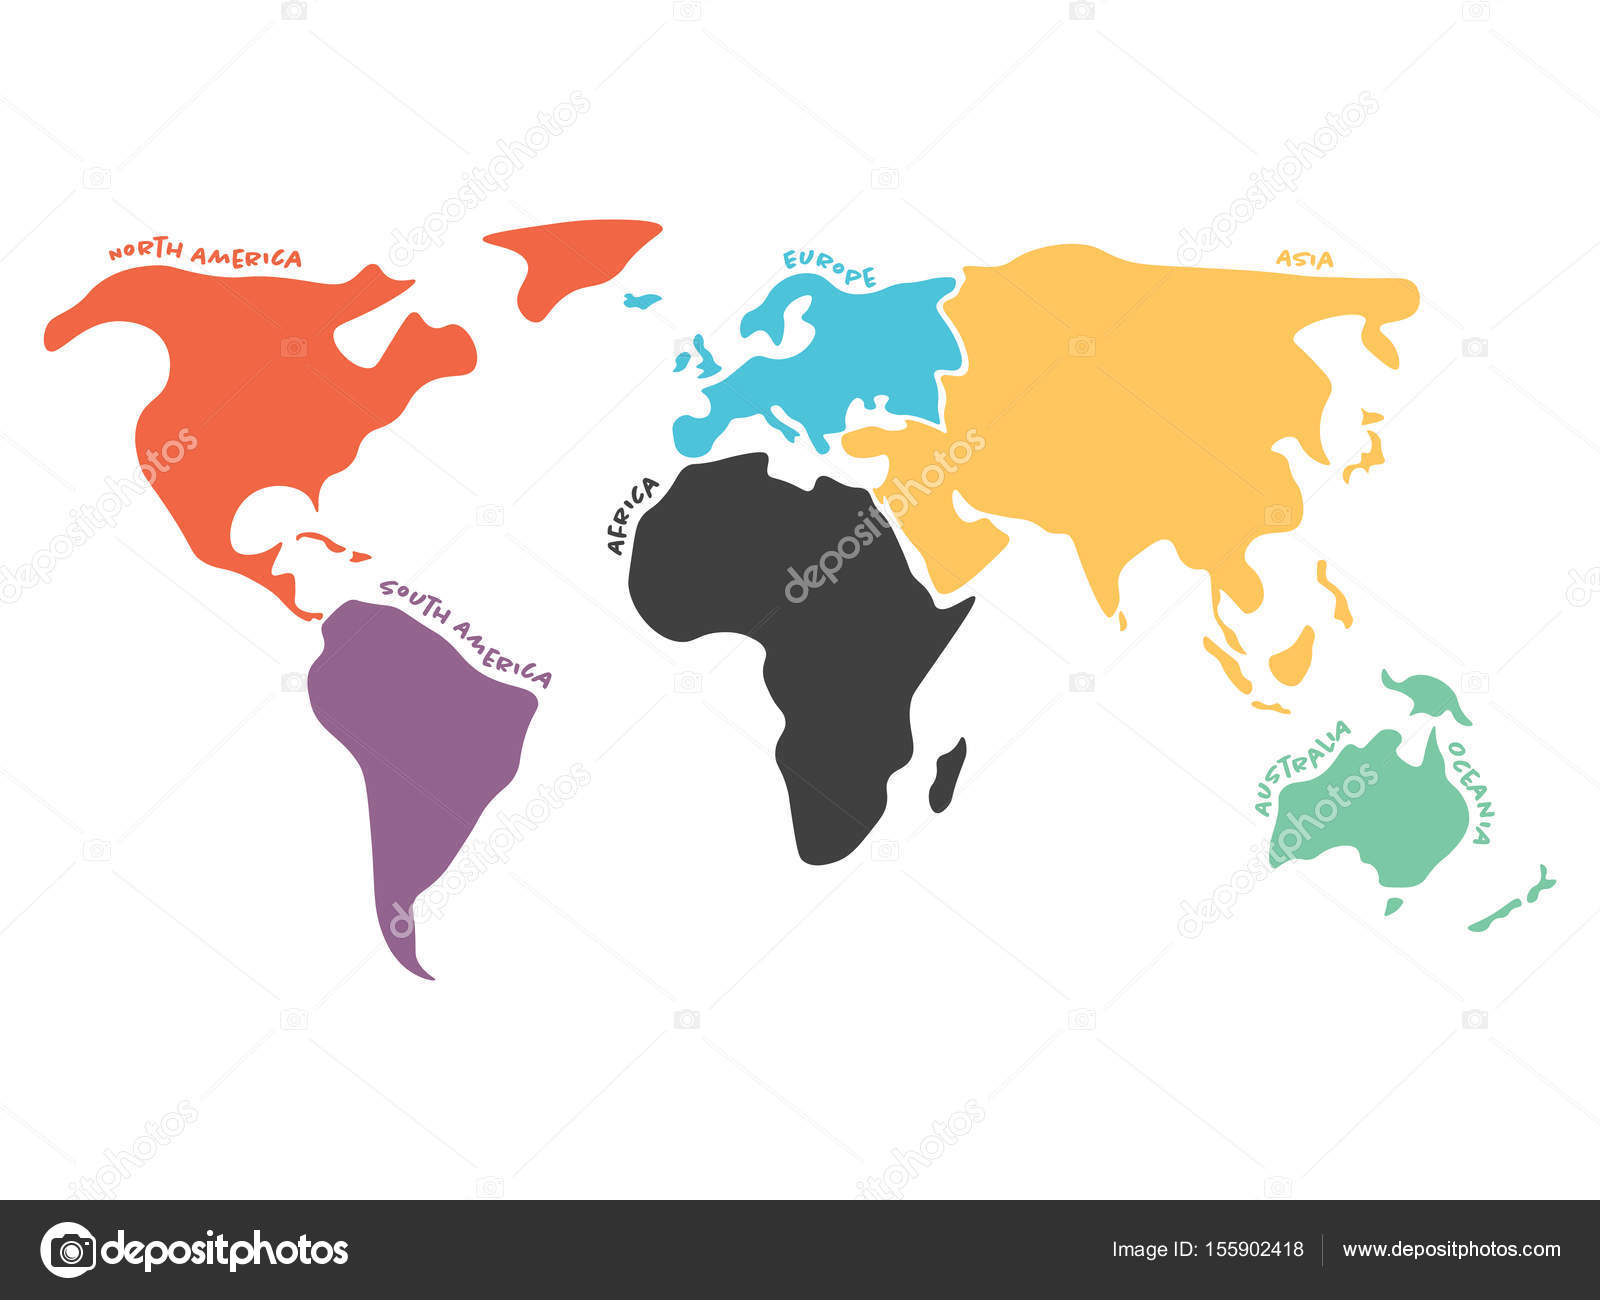 Multicolored simplified world map divided to continents stock multicolored world map divided to six continents in different colors north america south america africa europe asia and australia oceania gumiabroncs Image collections